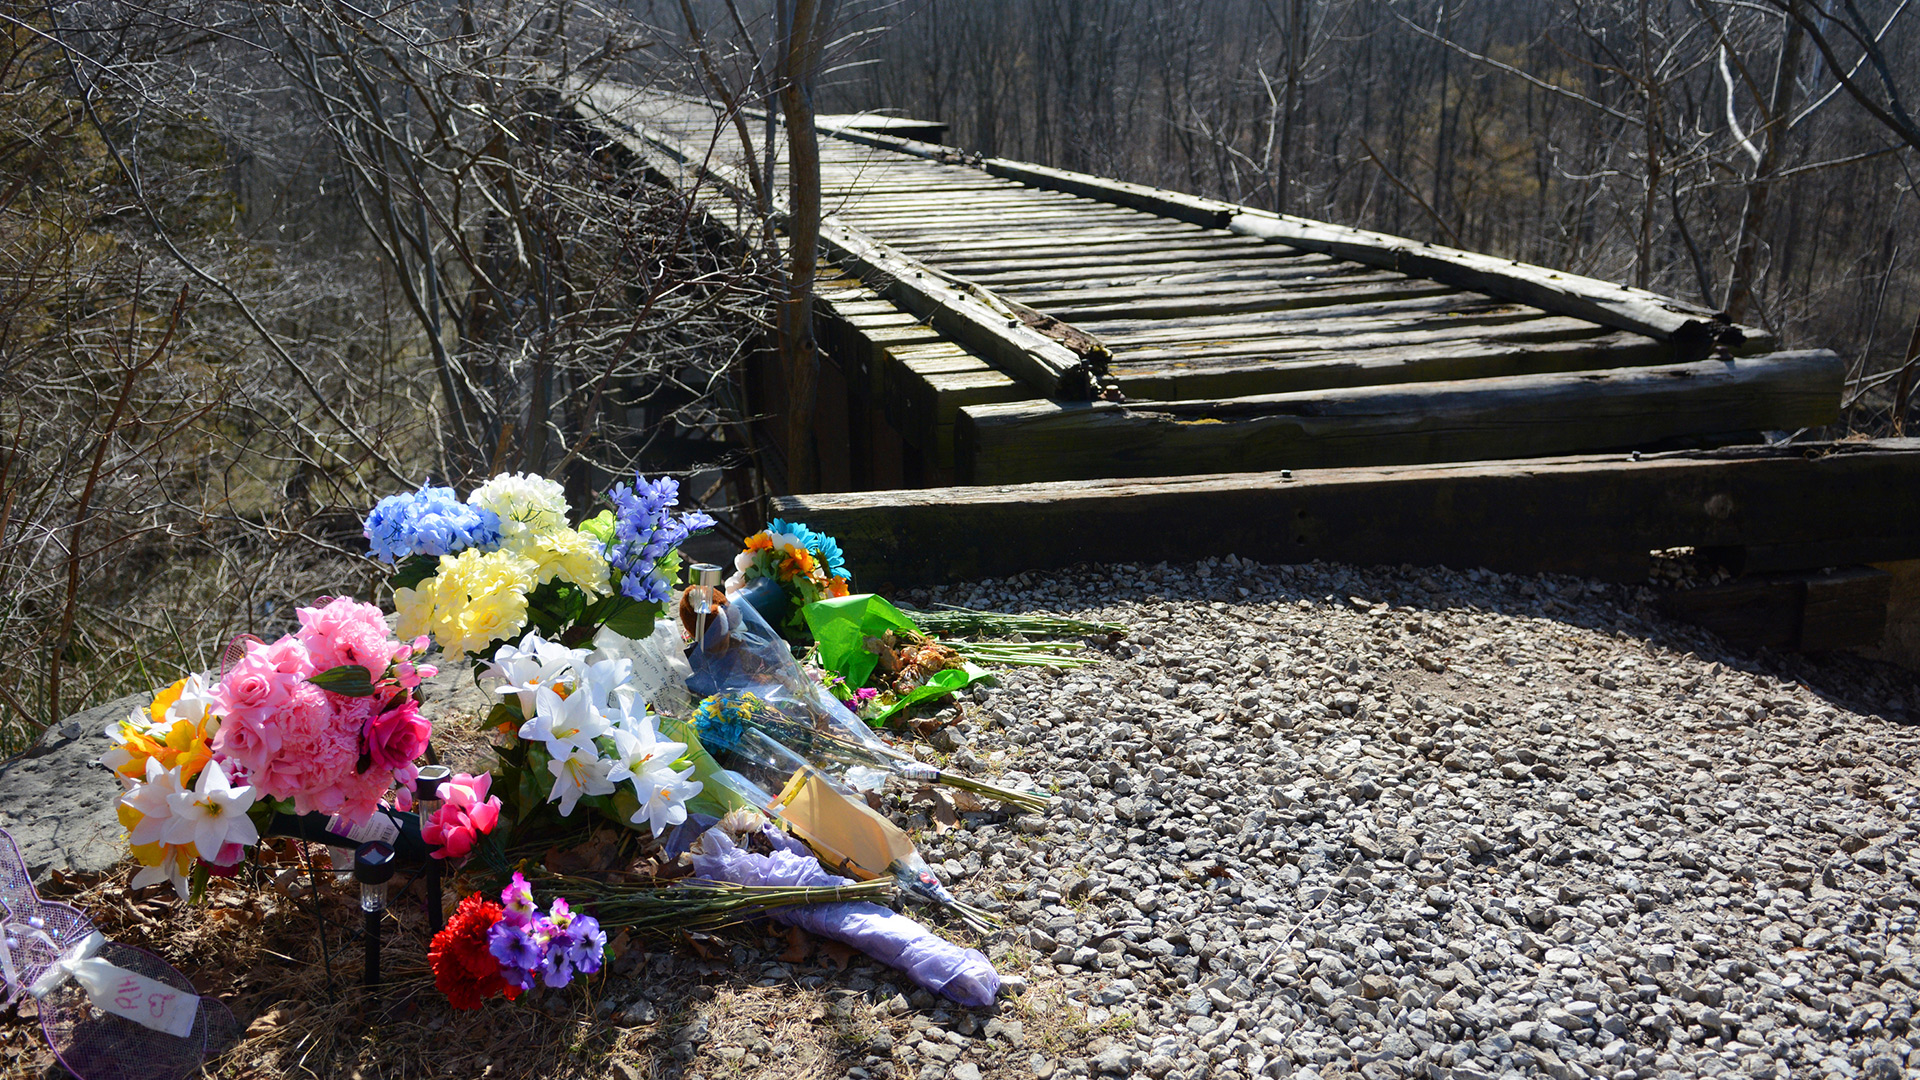 The Unsolved Delphi Murders: What Happened to Indiana Teens Libby German and Abby Williams?